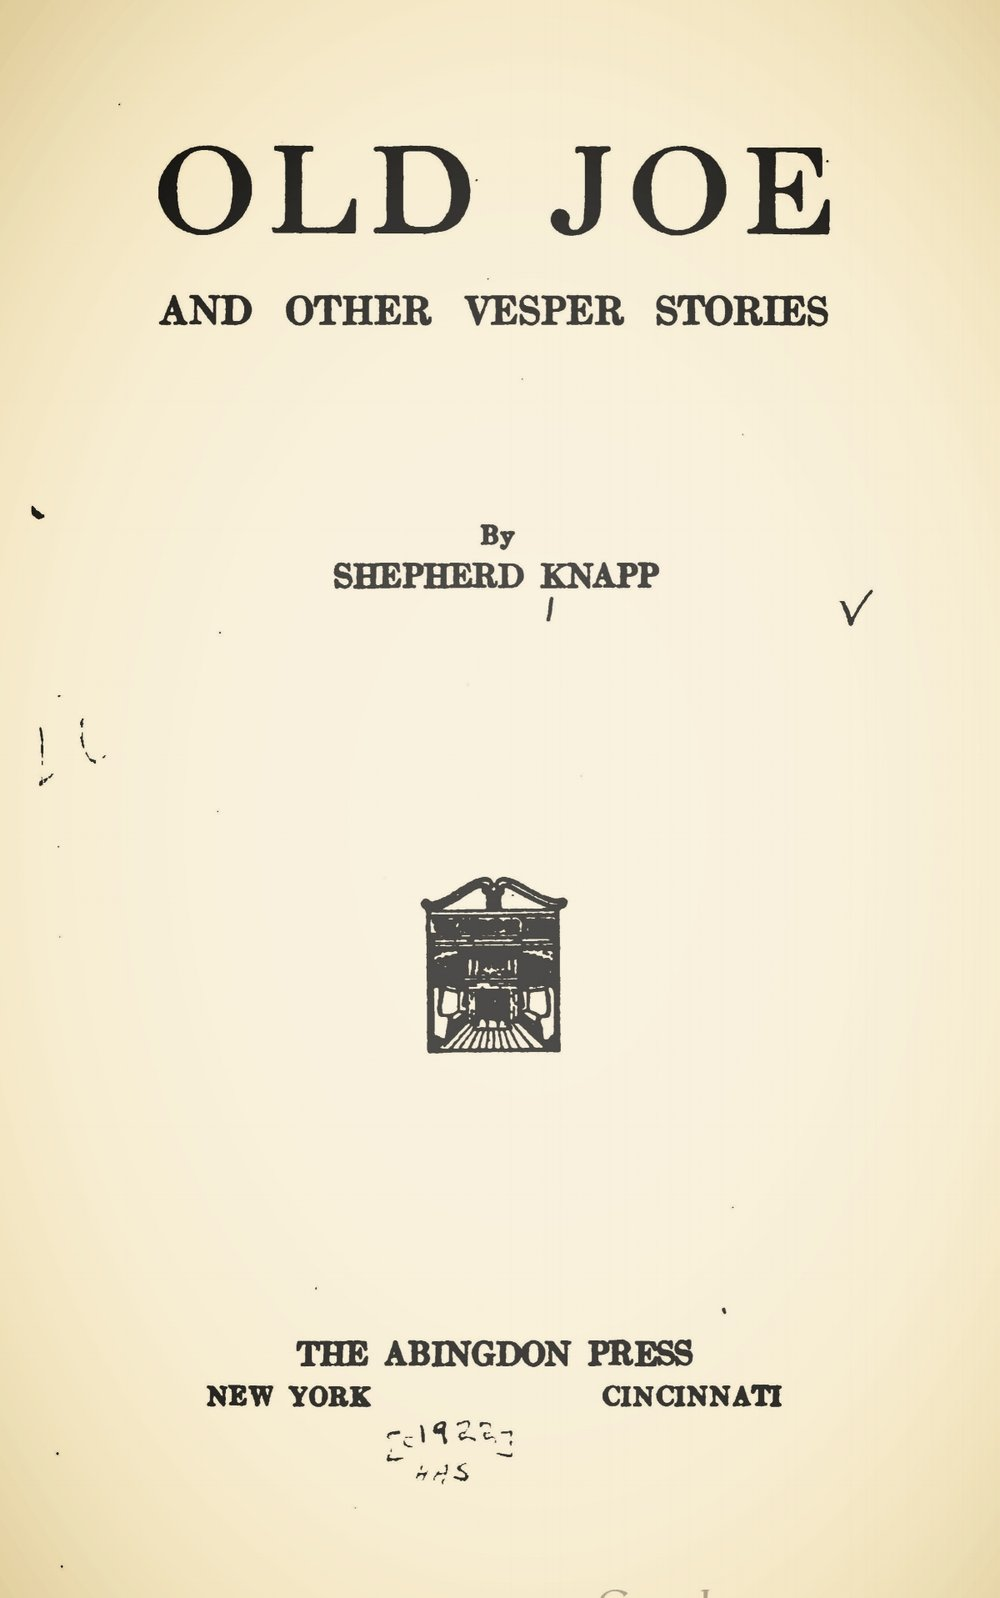 Knapp, Jr., Shepherd, Old Joe and Other Vesper Stories Title Page.jpg